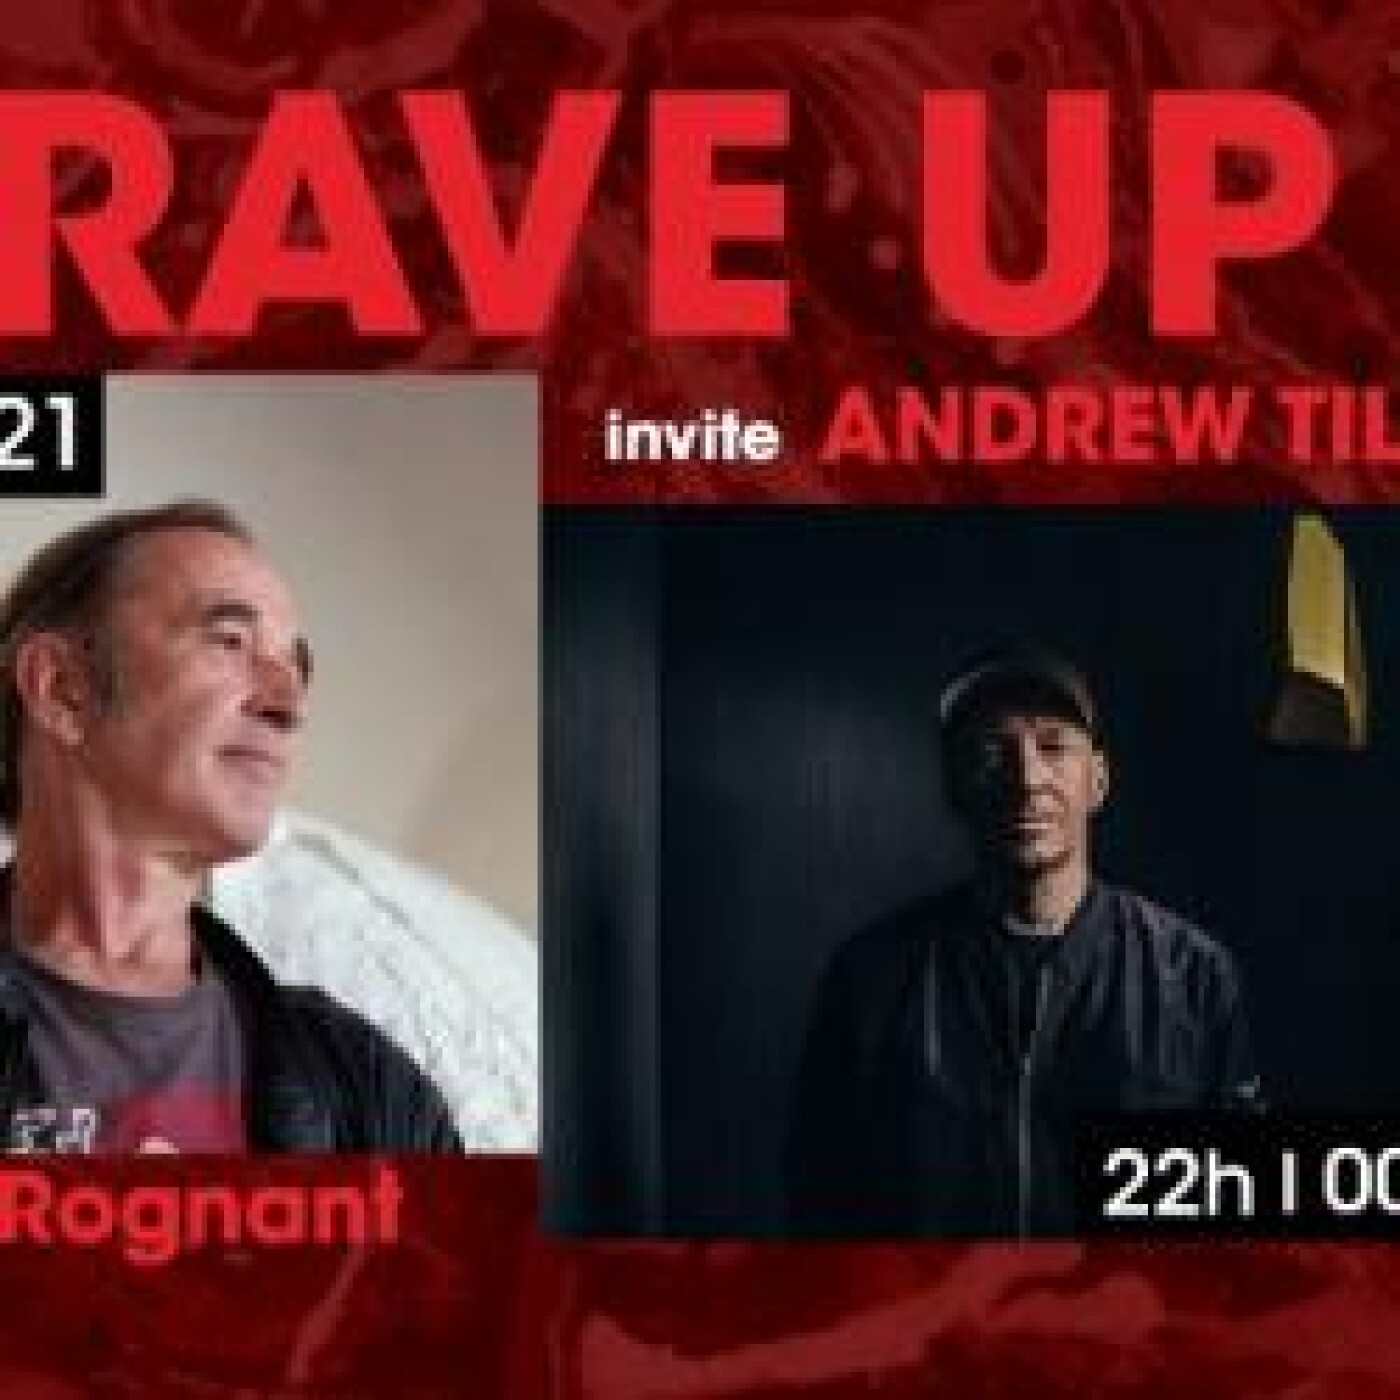 RAVE UP : ANDREW TILL